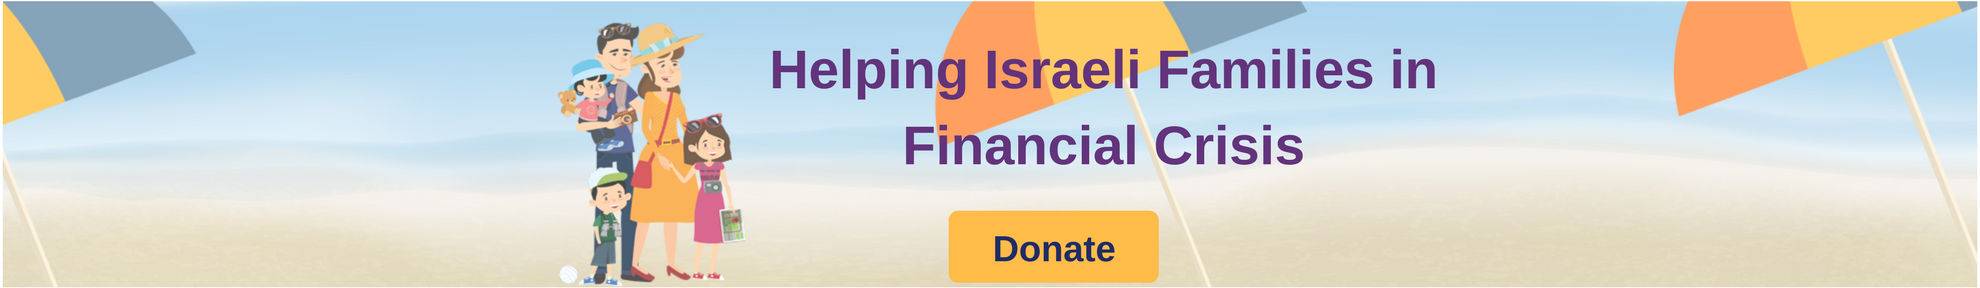 Helping-Israeli-Families-in-Financial-Crisis-7